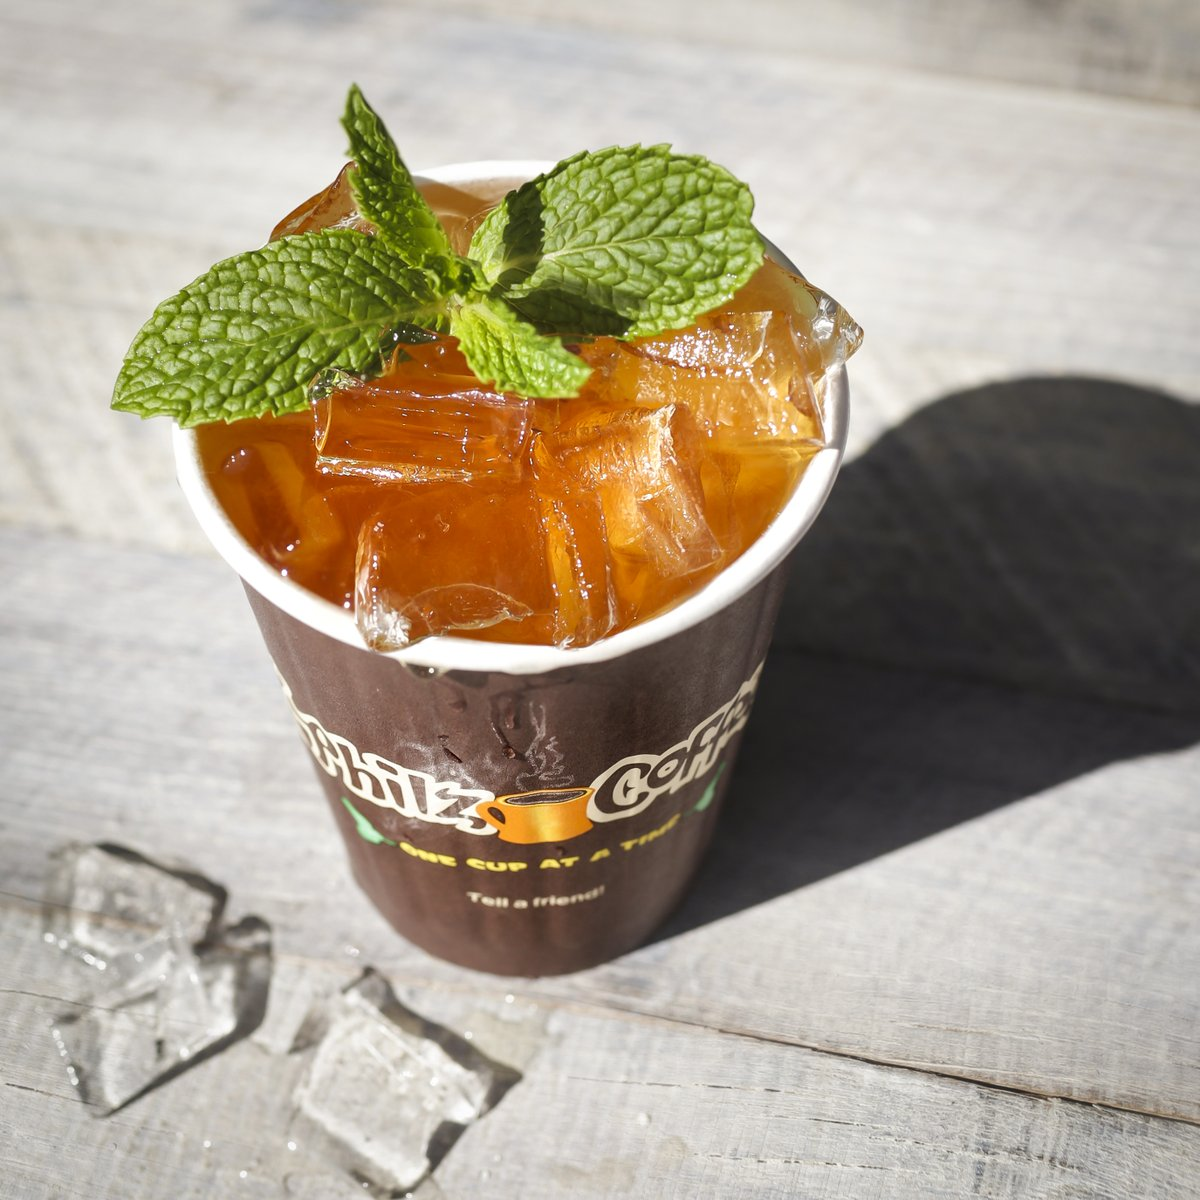 Need a refreshing pick-me-up? Try a Philz Iced Tea! It's a unique blend of teas you won't find anywhere else. . Try it straight up or with a touch of cream and sugar. . #philzapp #teatime #icedtea #philzway https://t.co/SPF4KLG3mO